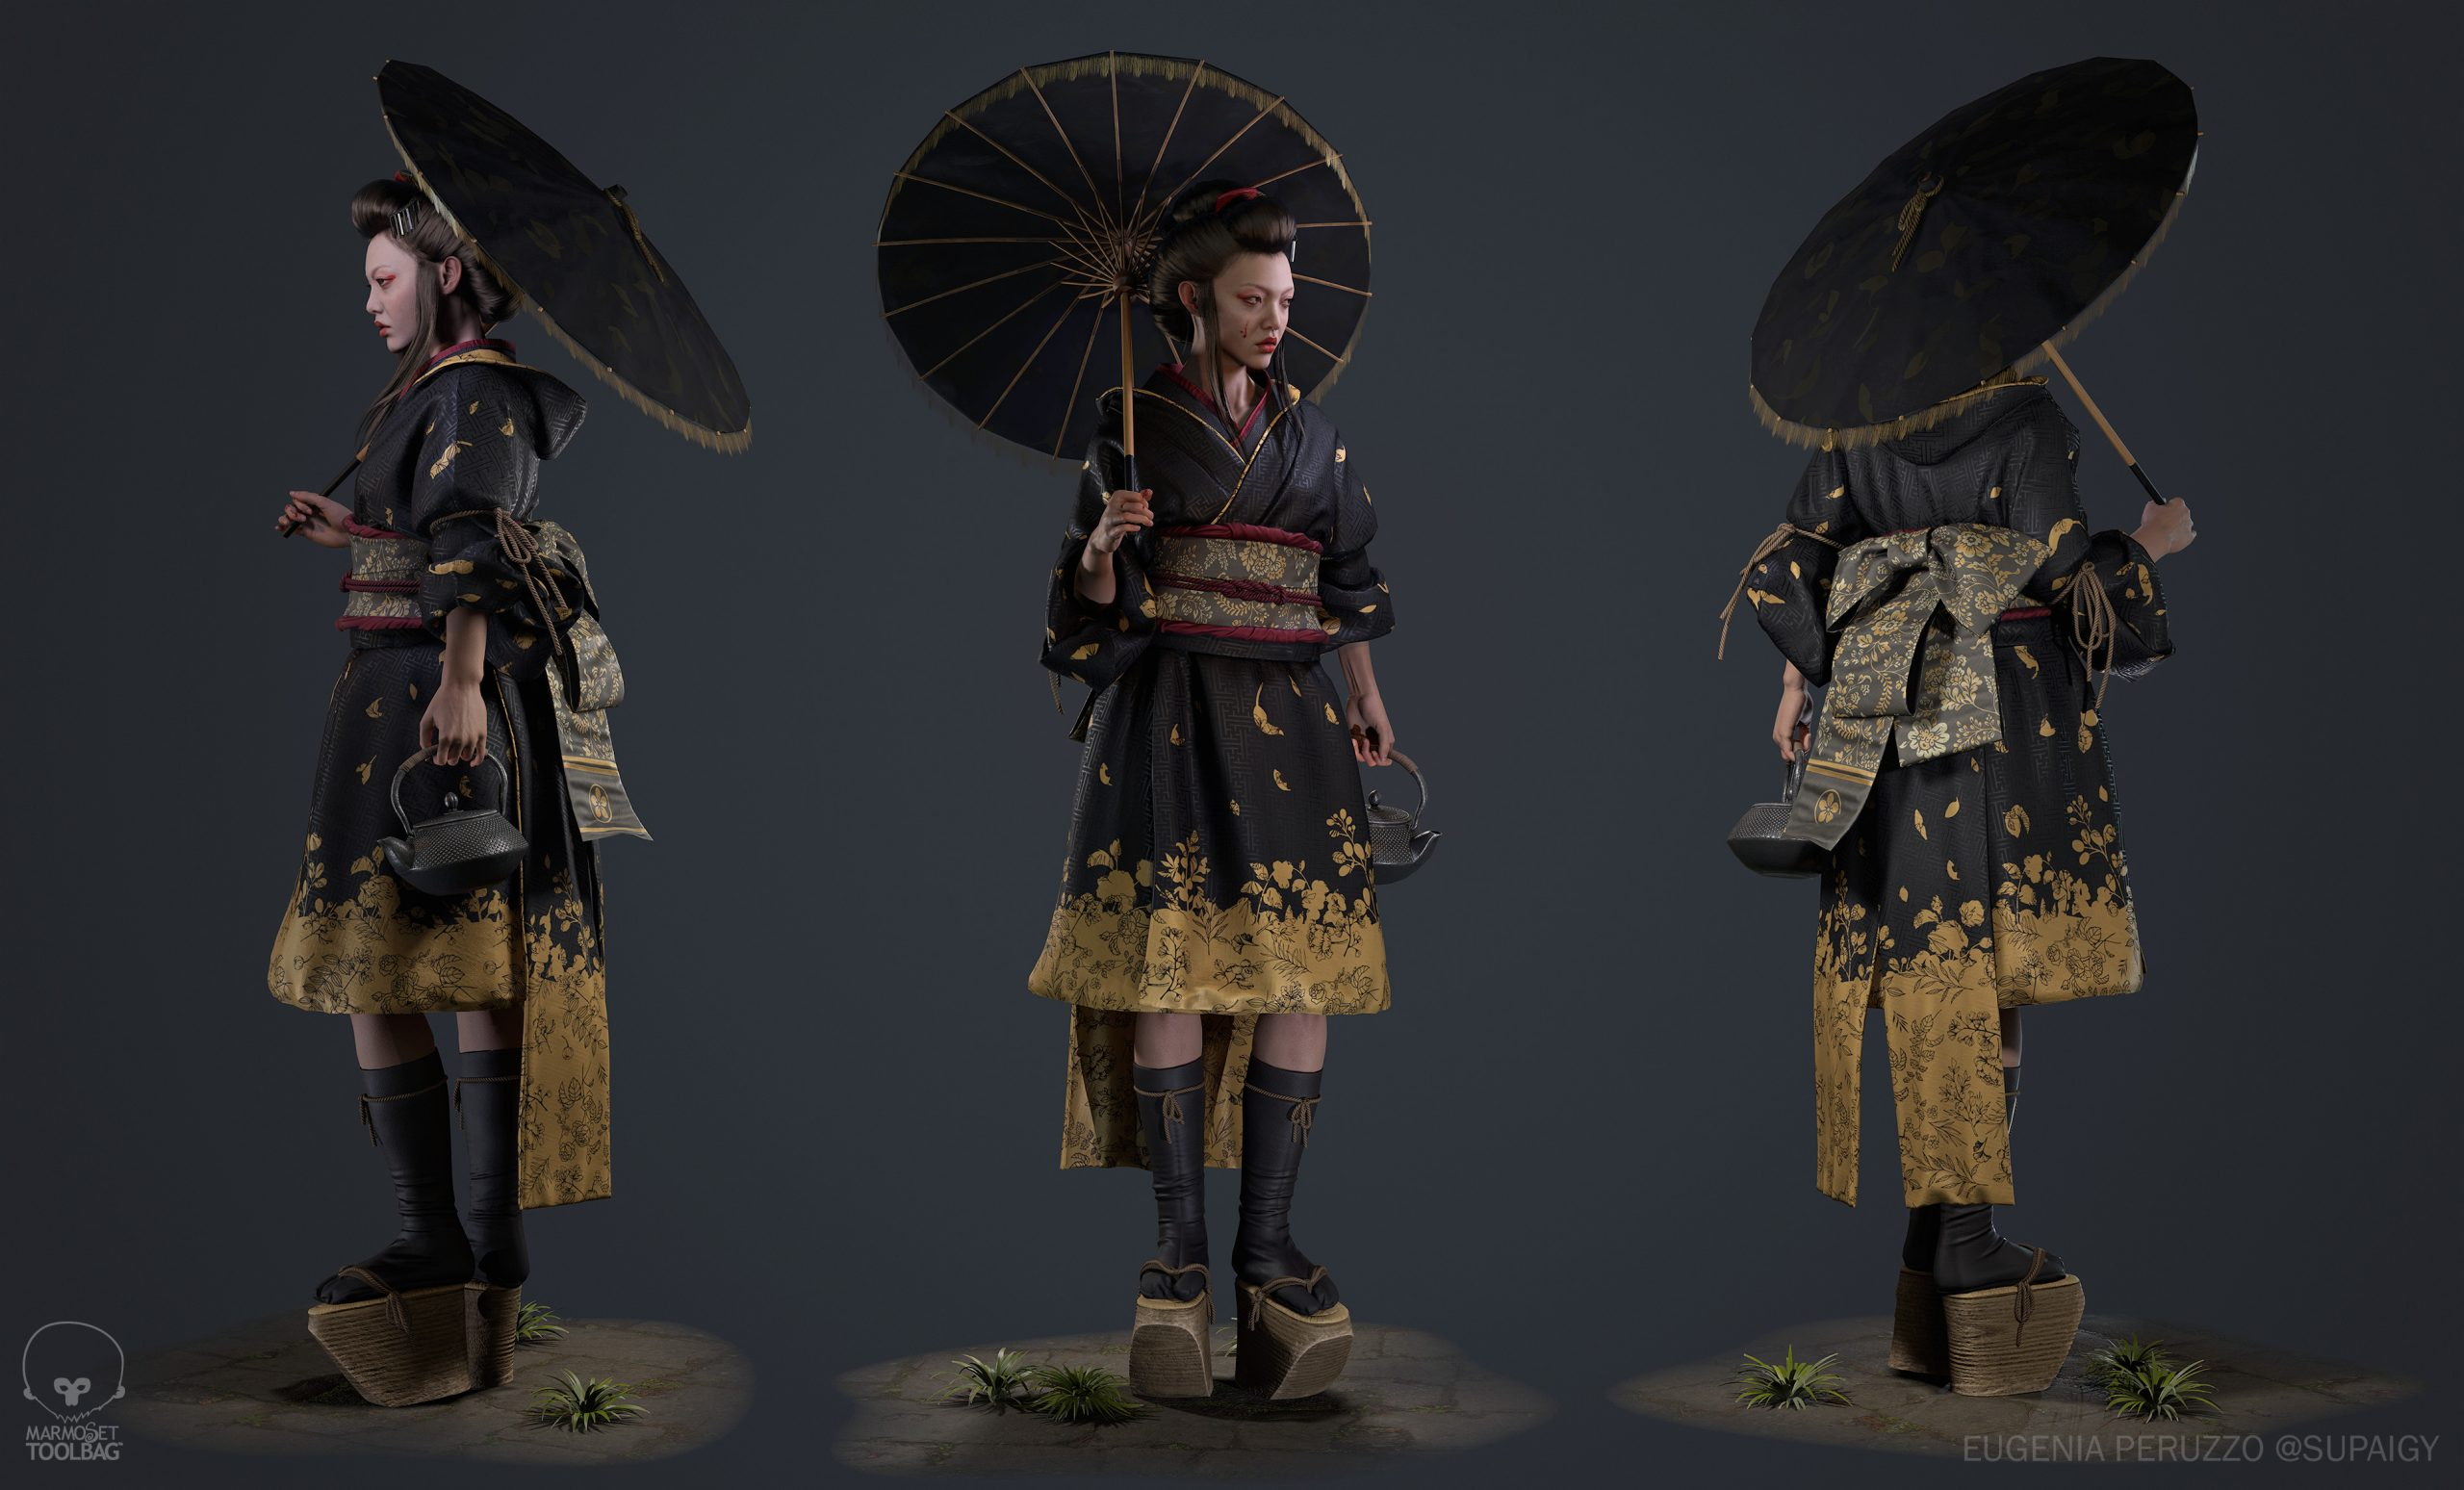 Three different full-body angles of a geisha outfit by Eugenia